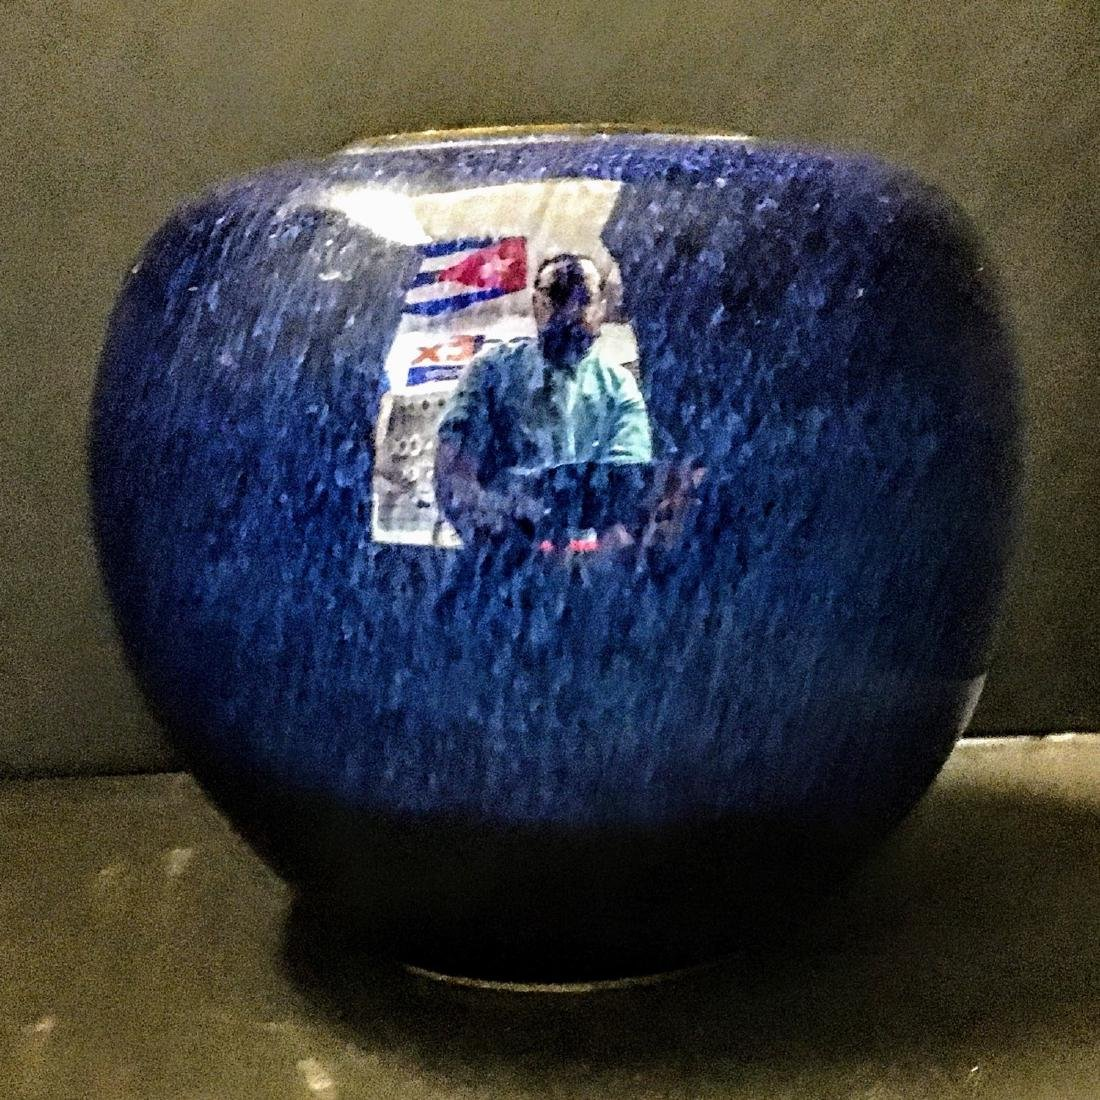 Asian Blue Pottery Small Studio Vase